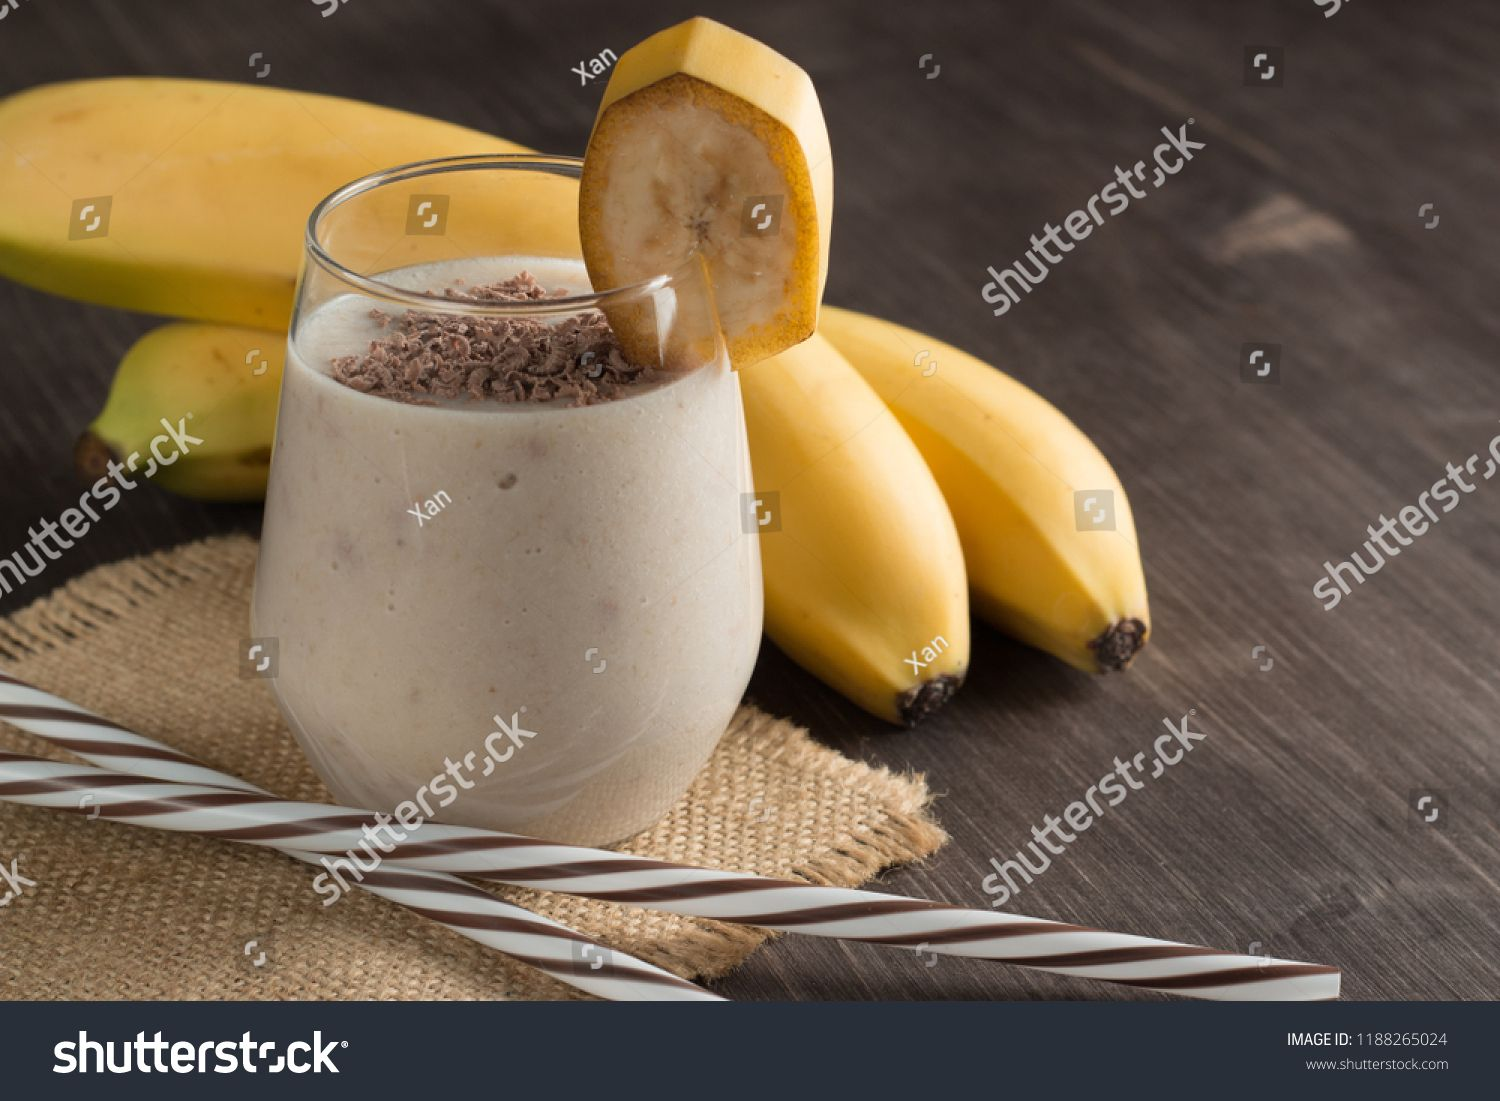 Photo of fresh Made Chocolate Banana Smoothie on a wooden table with cookies, banana and coconut. Milkshake. Protein diet. Healthy food concept. Drink, coffee beans, chocolate. #Sponsored , #AD, #table#wooden#cookies#coconut #chocolatebananasmoothie